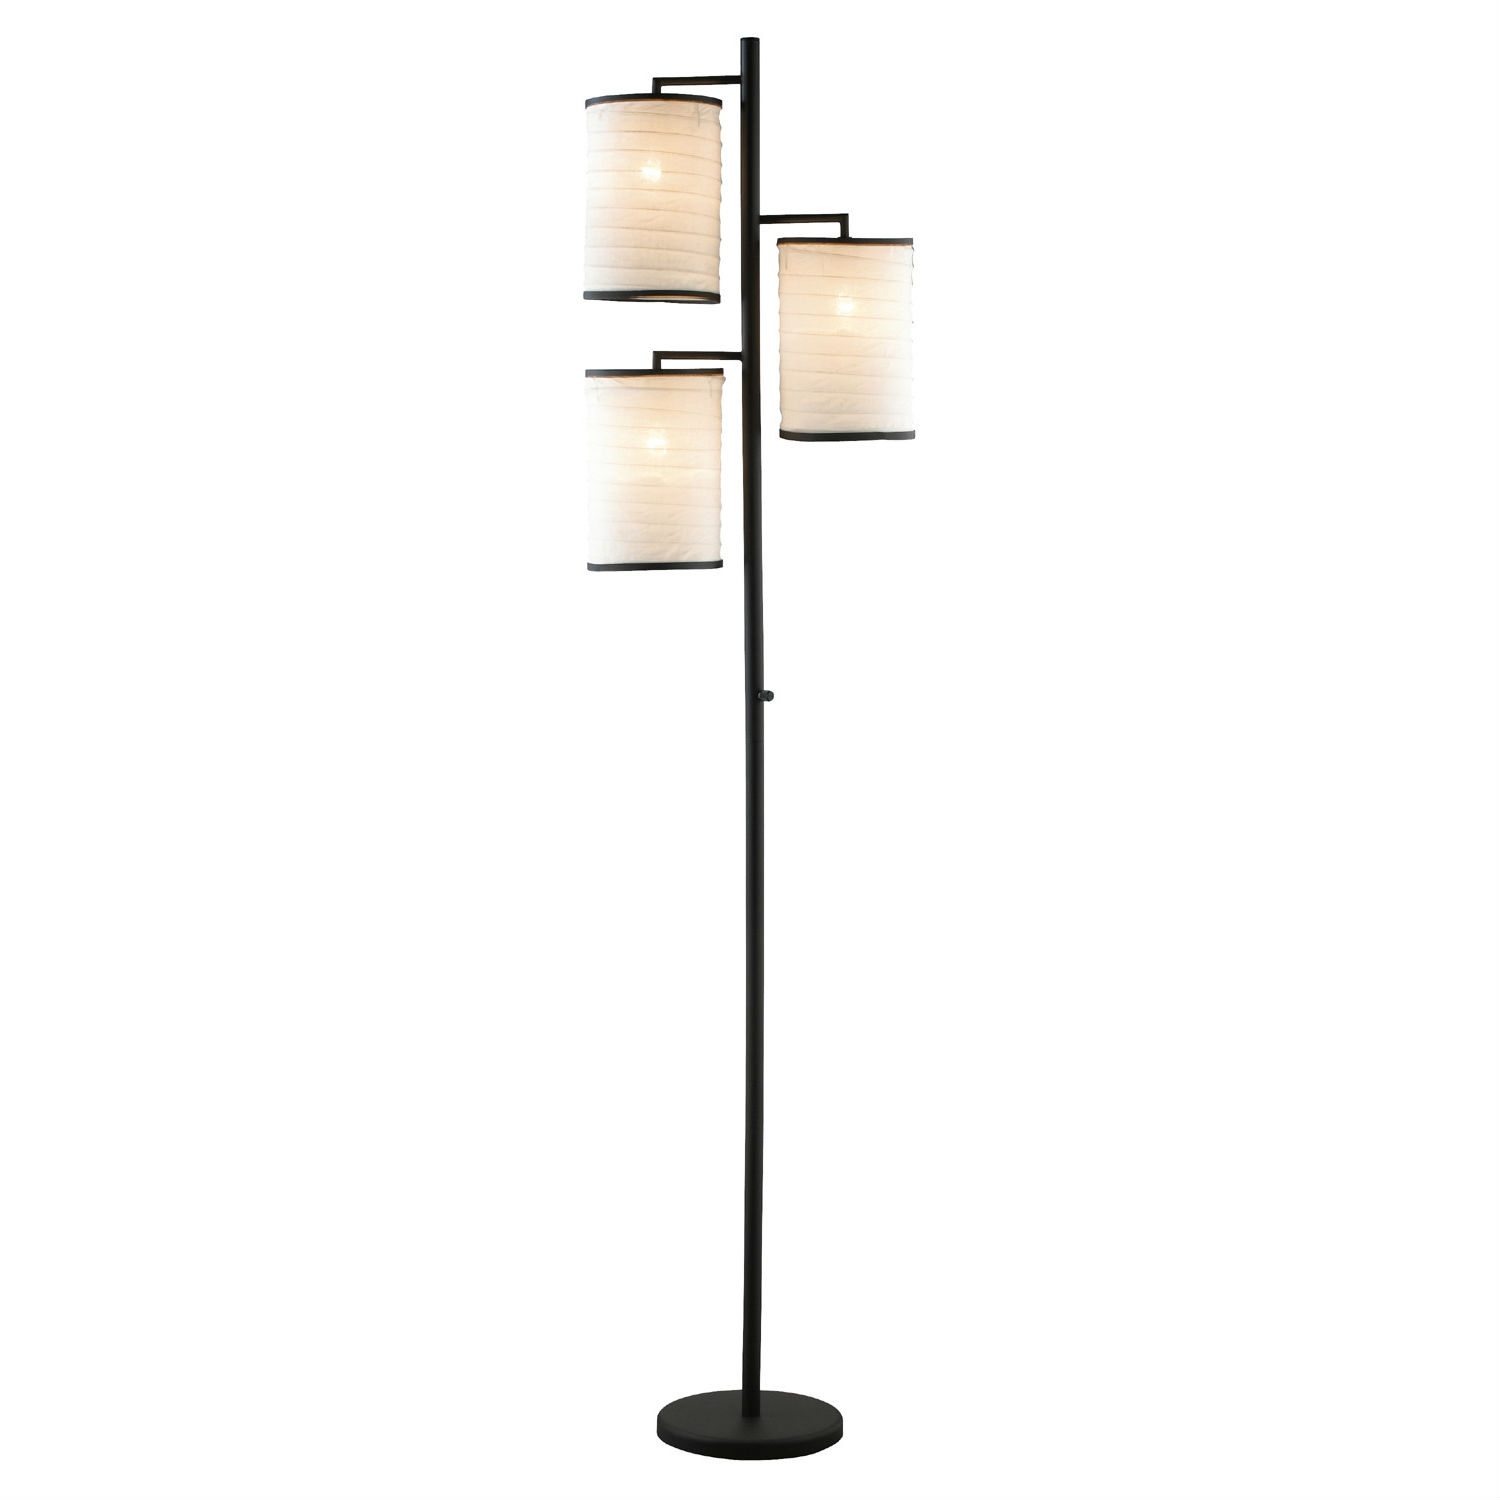 Modern Japanese Style 3-Light Tree Floor Lamp with Cotton Shades, ABFL762913 :  Add artistic Japanese style and flare to any room with this Modern Japanese Style 3-Light Tree Floor Lamp with Cotton Shades. It has an antique bronze finish and white cotton lantern shades.  3-Way turn switch on pole; Antique bronze finish; 3 Lanterns, 60 Watts each;  Style: Modern; Base Finish: Chrome; Shade Color: White; Distressed: Yes; Powder Coated Finish: Yes; Material: Metal; Material Details: Stainless steel; Bulb Type: Incandescent; Bulb Included: No